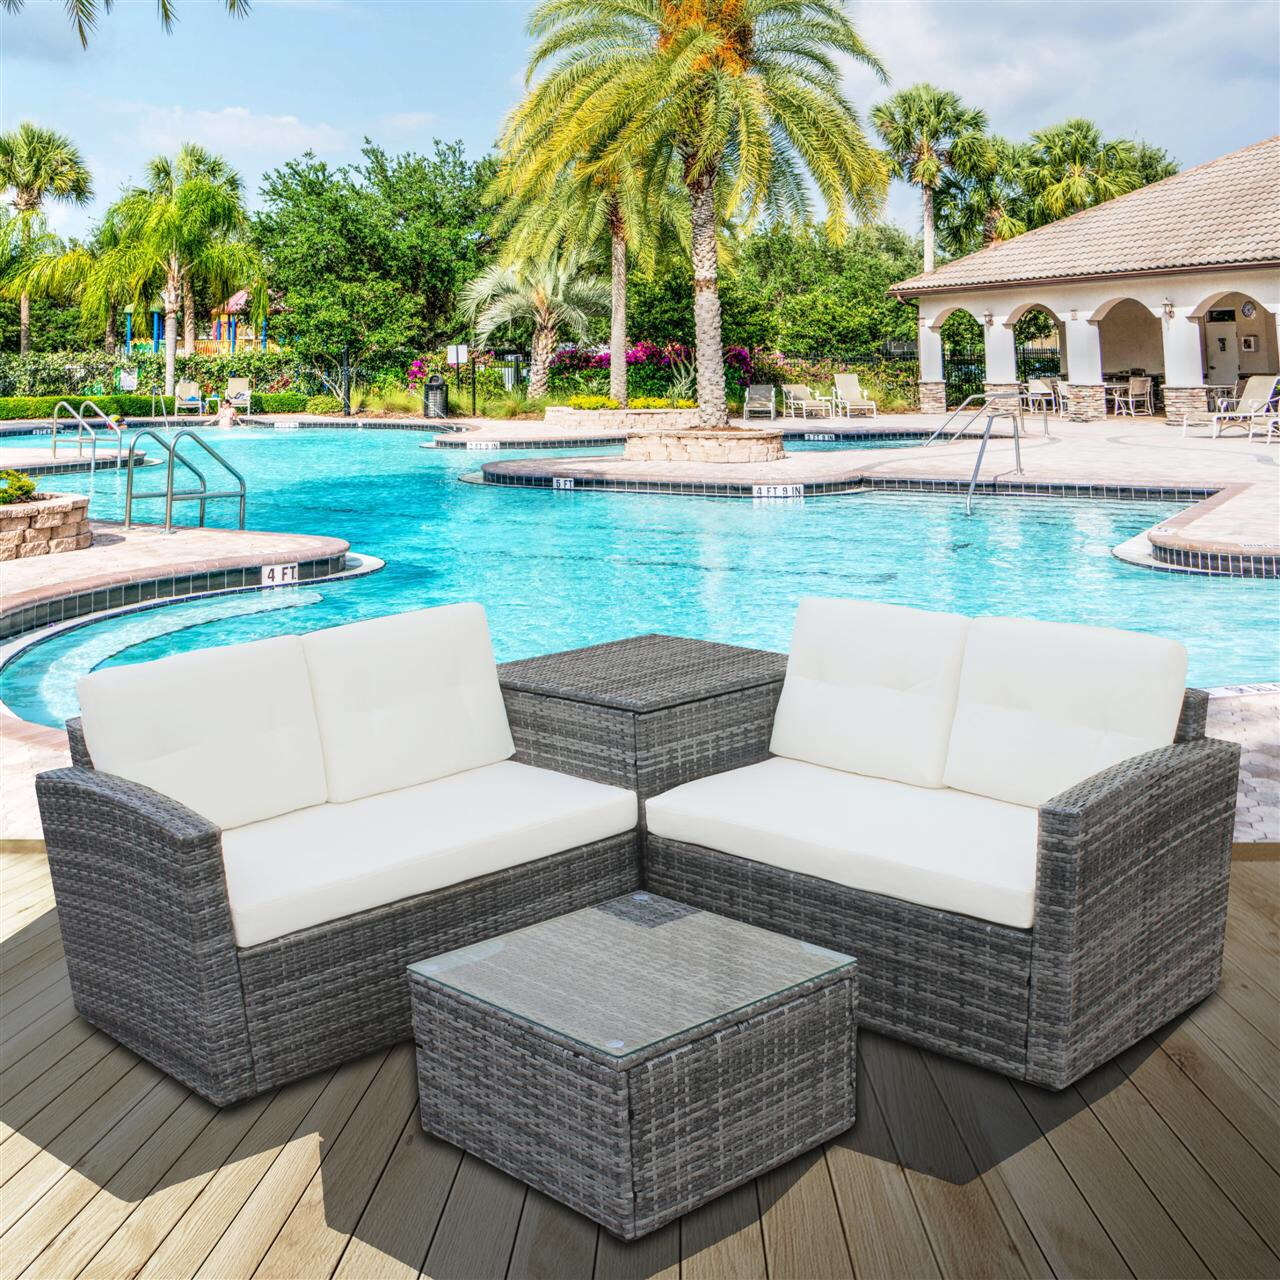 CLEARANCE! Outdoor Patio Conversation Furniture Sets, 4 ... on Patio Loveseat Set id=98142